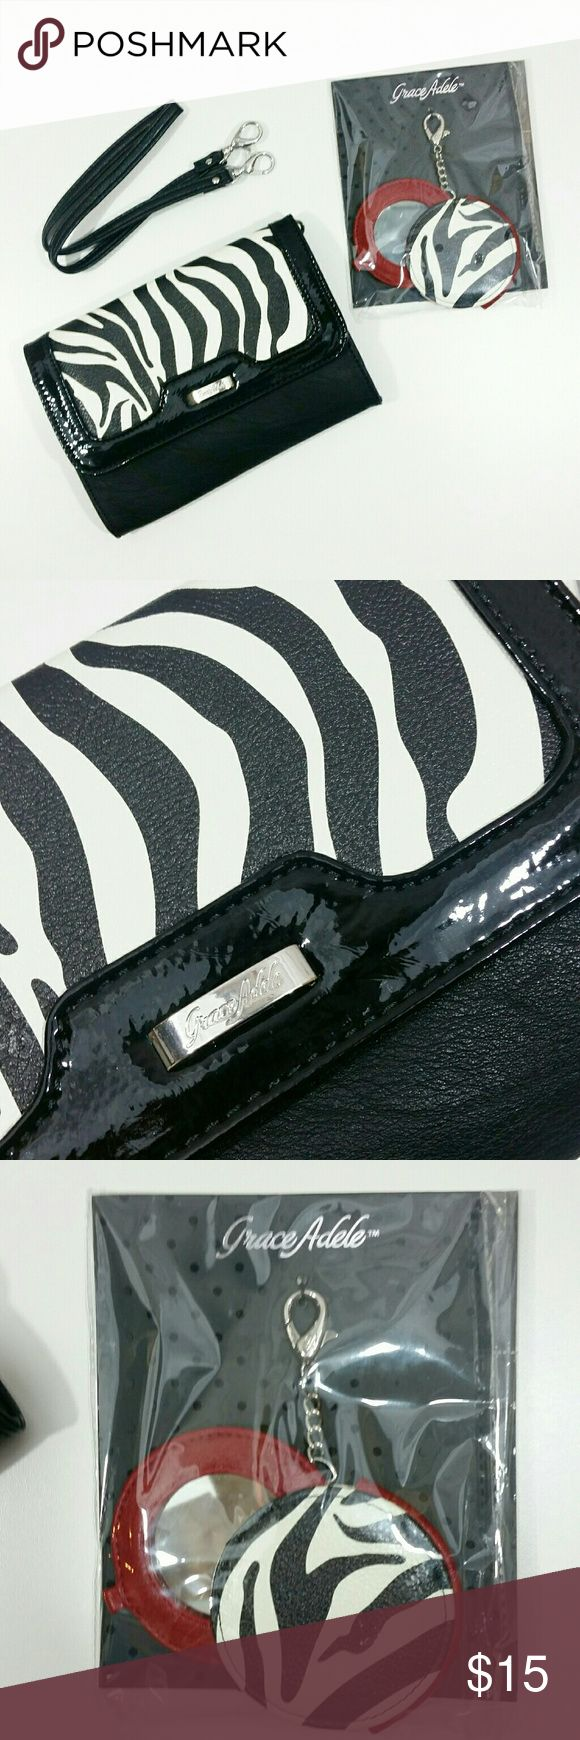 Grace Adele clutch with mirror This Grace Adele clutch is red, black, and zebra print. It comes with a clip on pocket mirror and a detachable strap that is approx 23 inches. The purse is 6 inches long and 8 1/2 inches wide. Grace Adele Accessories